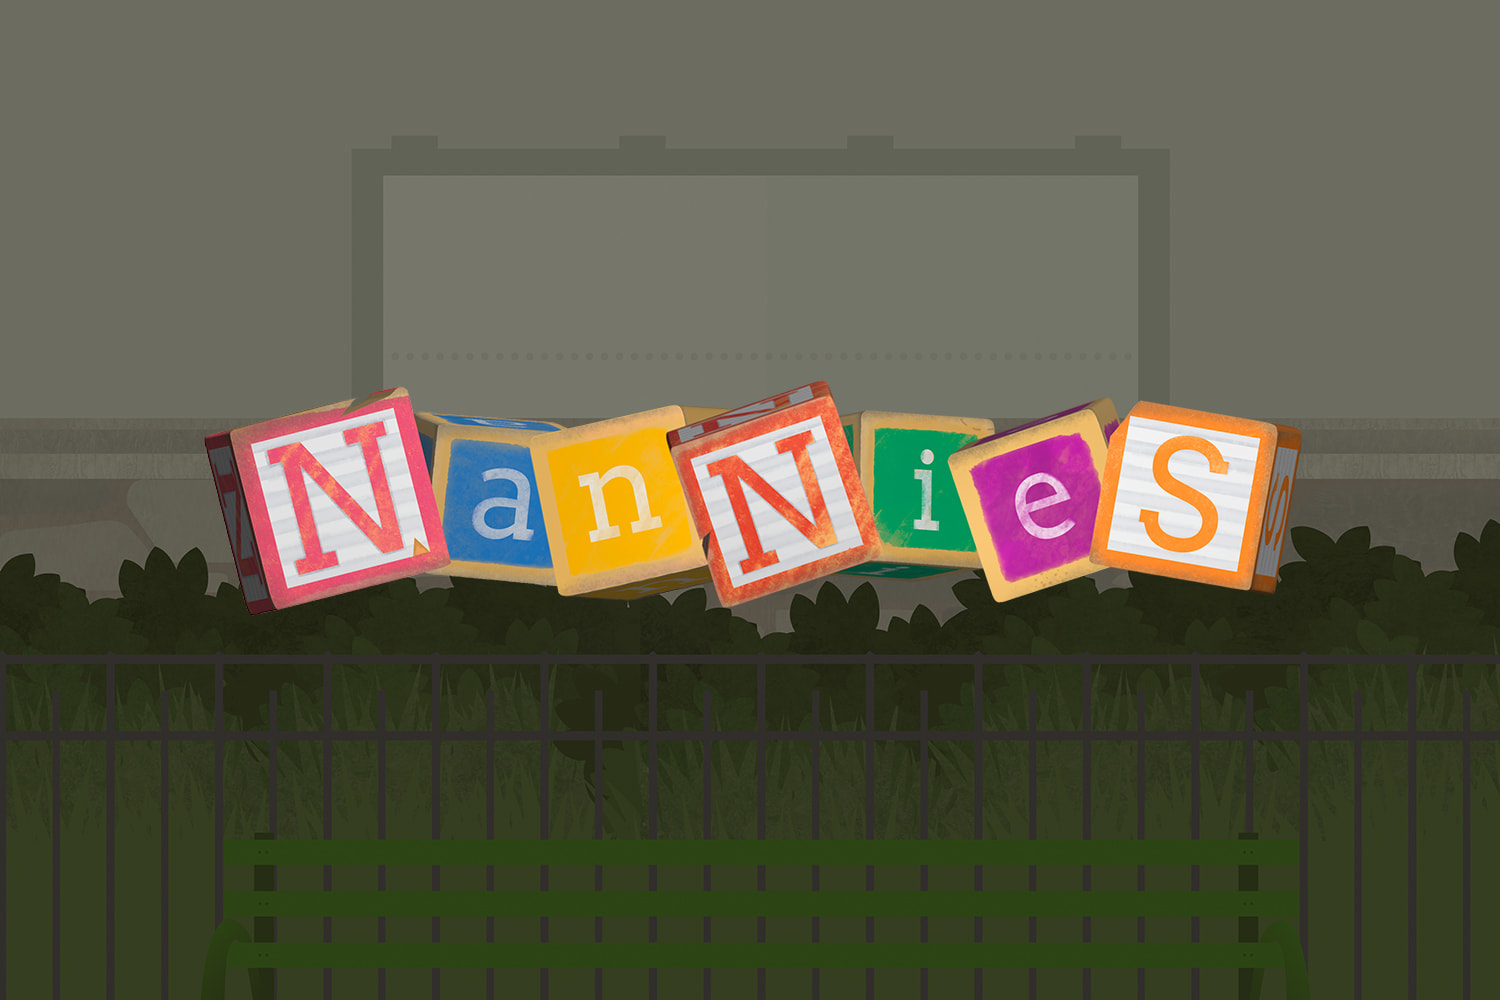 Nannies Series Logo